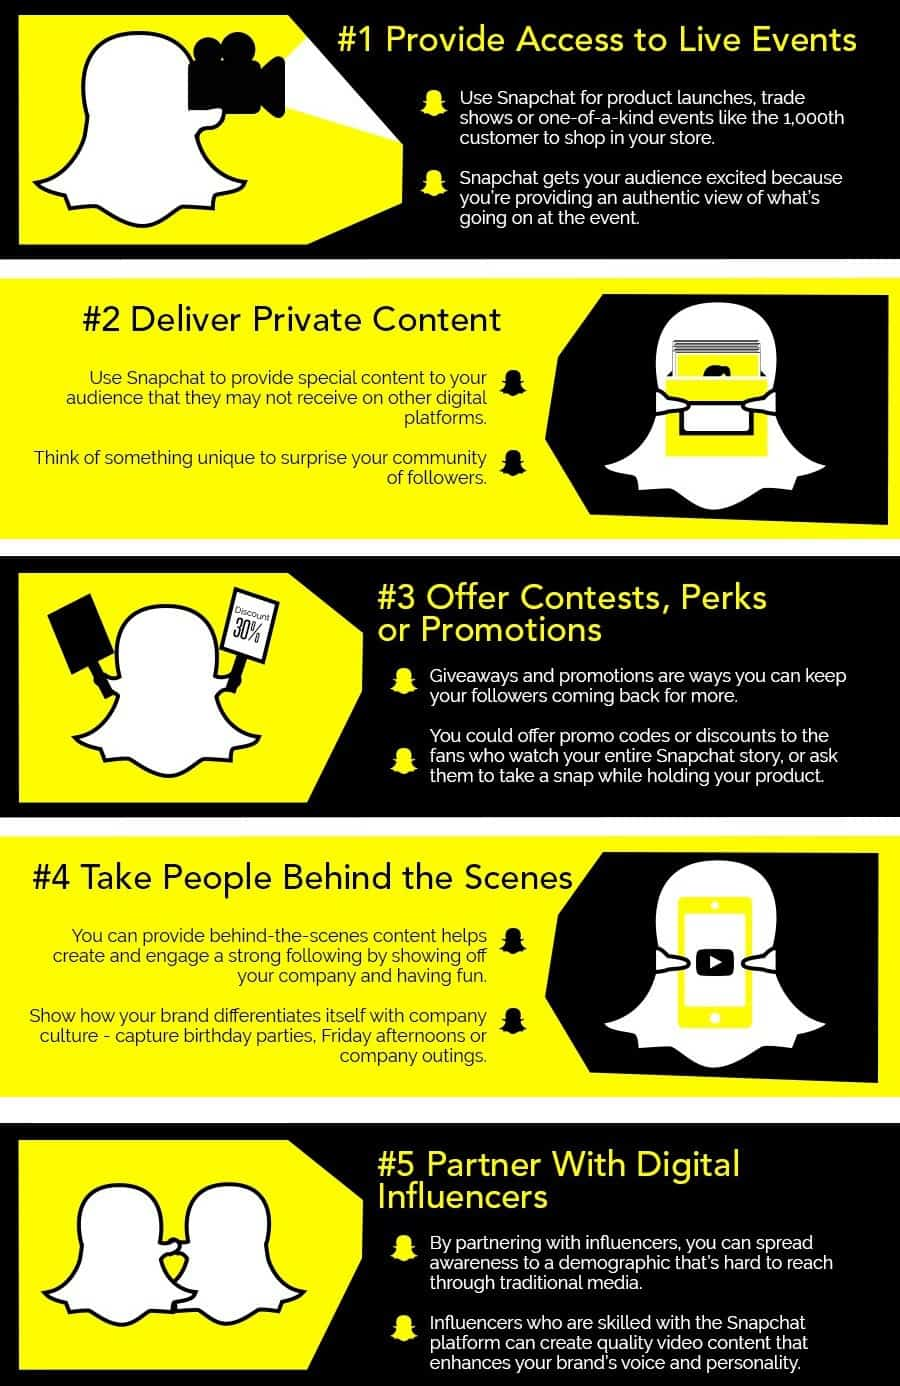 snapchat-infographic-promoting-business